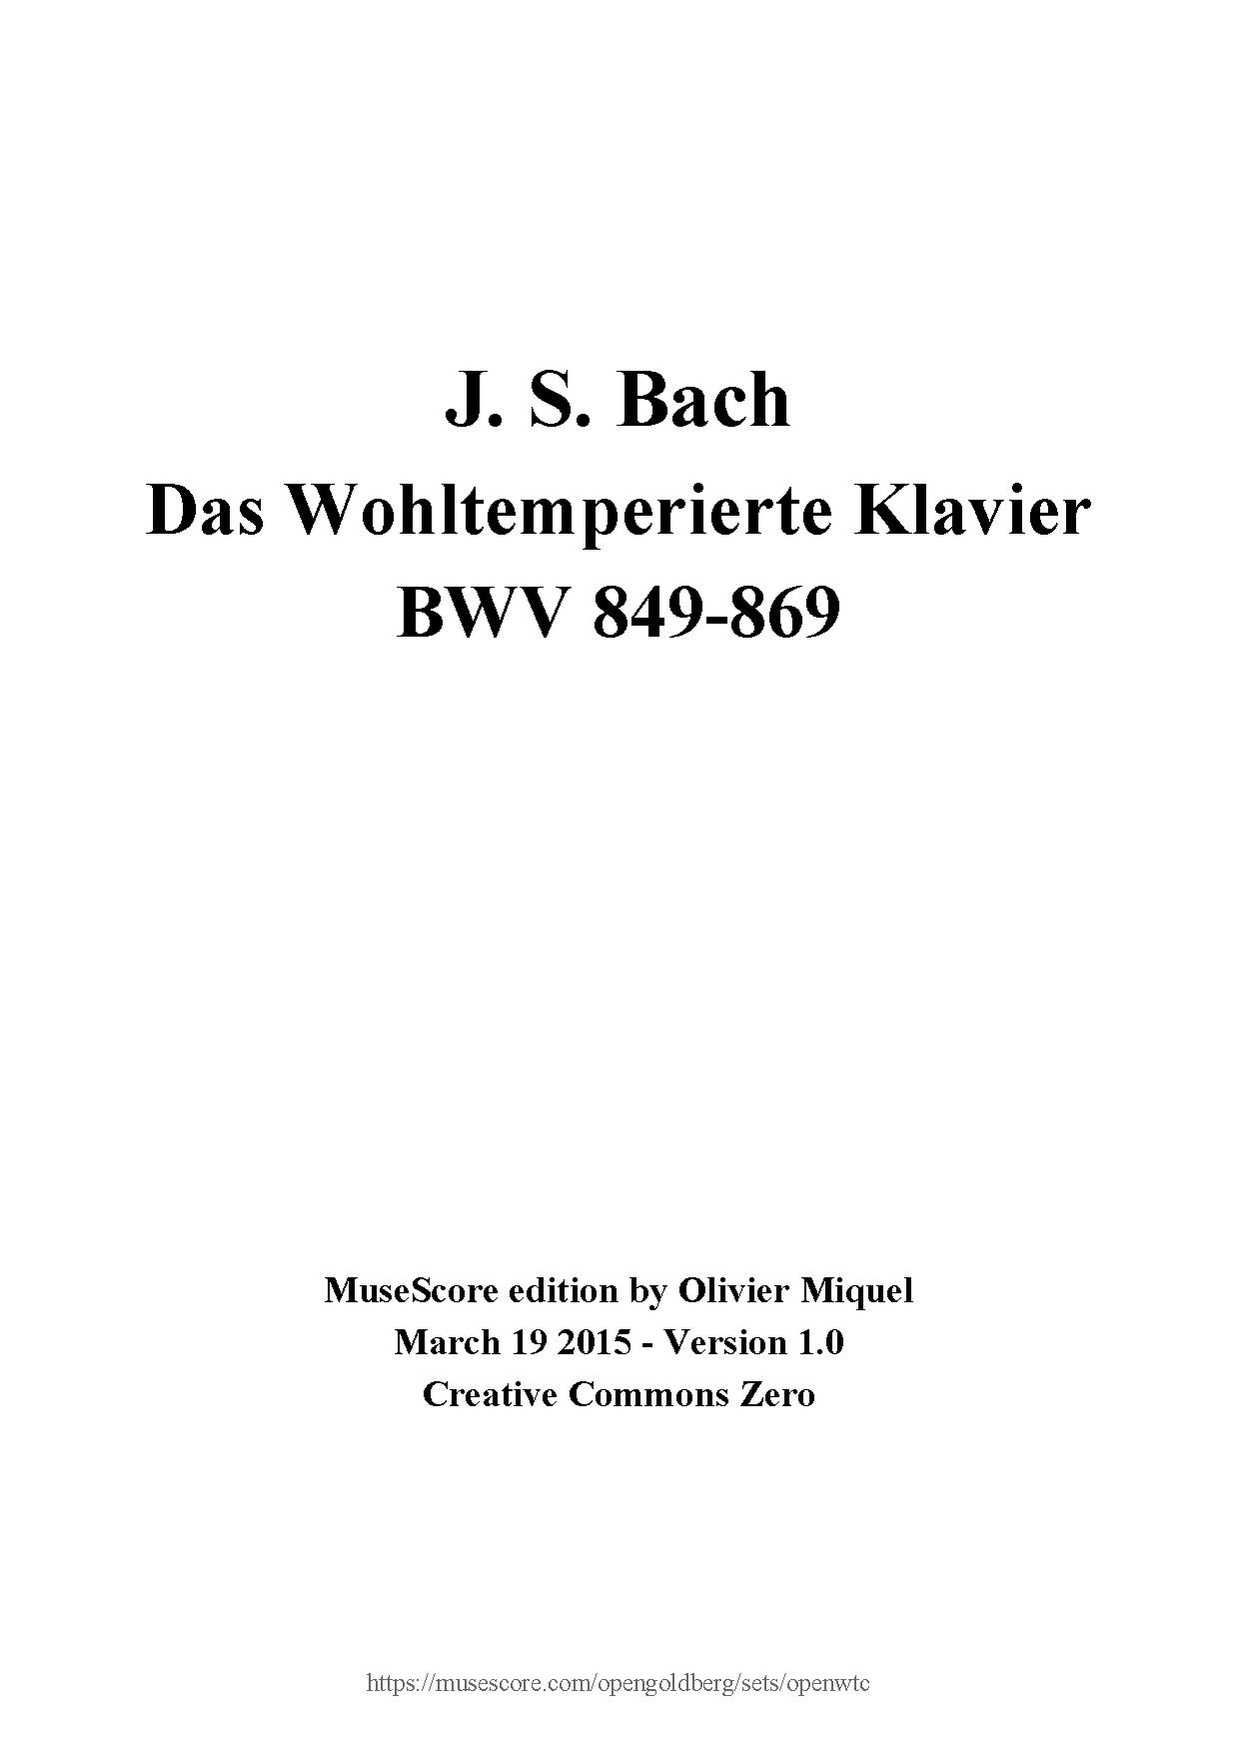 Filejs Bach The Well Tempered Clavier Book 1 Openwtcpdf Original File 1239 X 1754 Pixels Size 211 Mb Mime